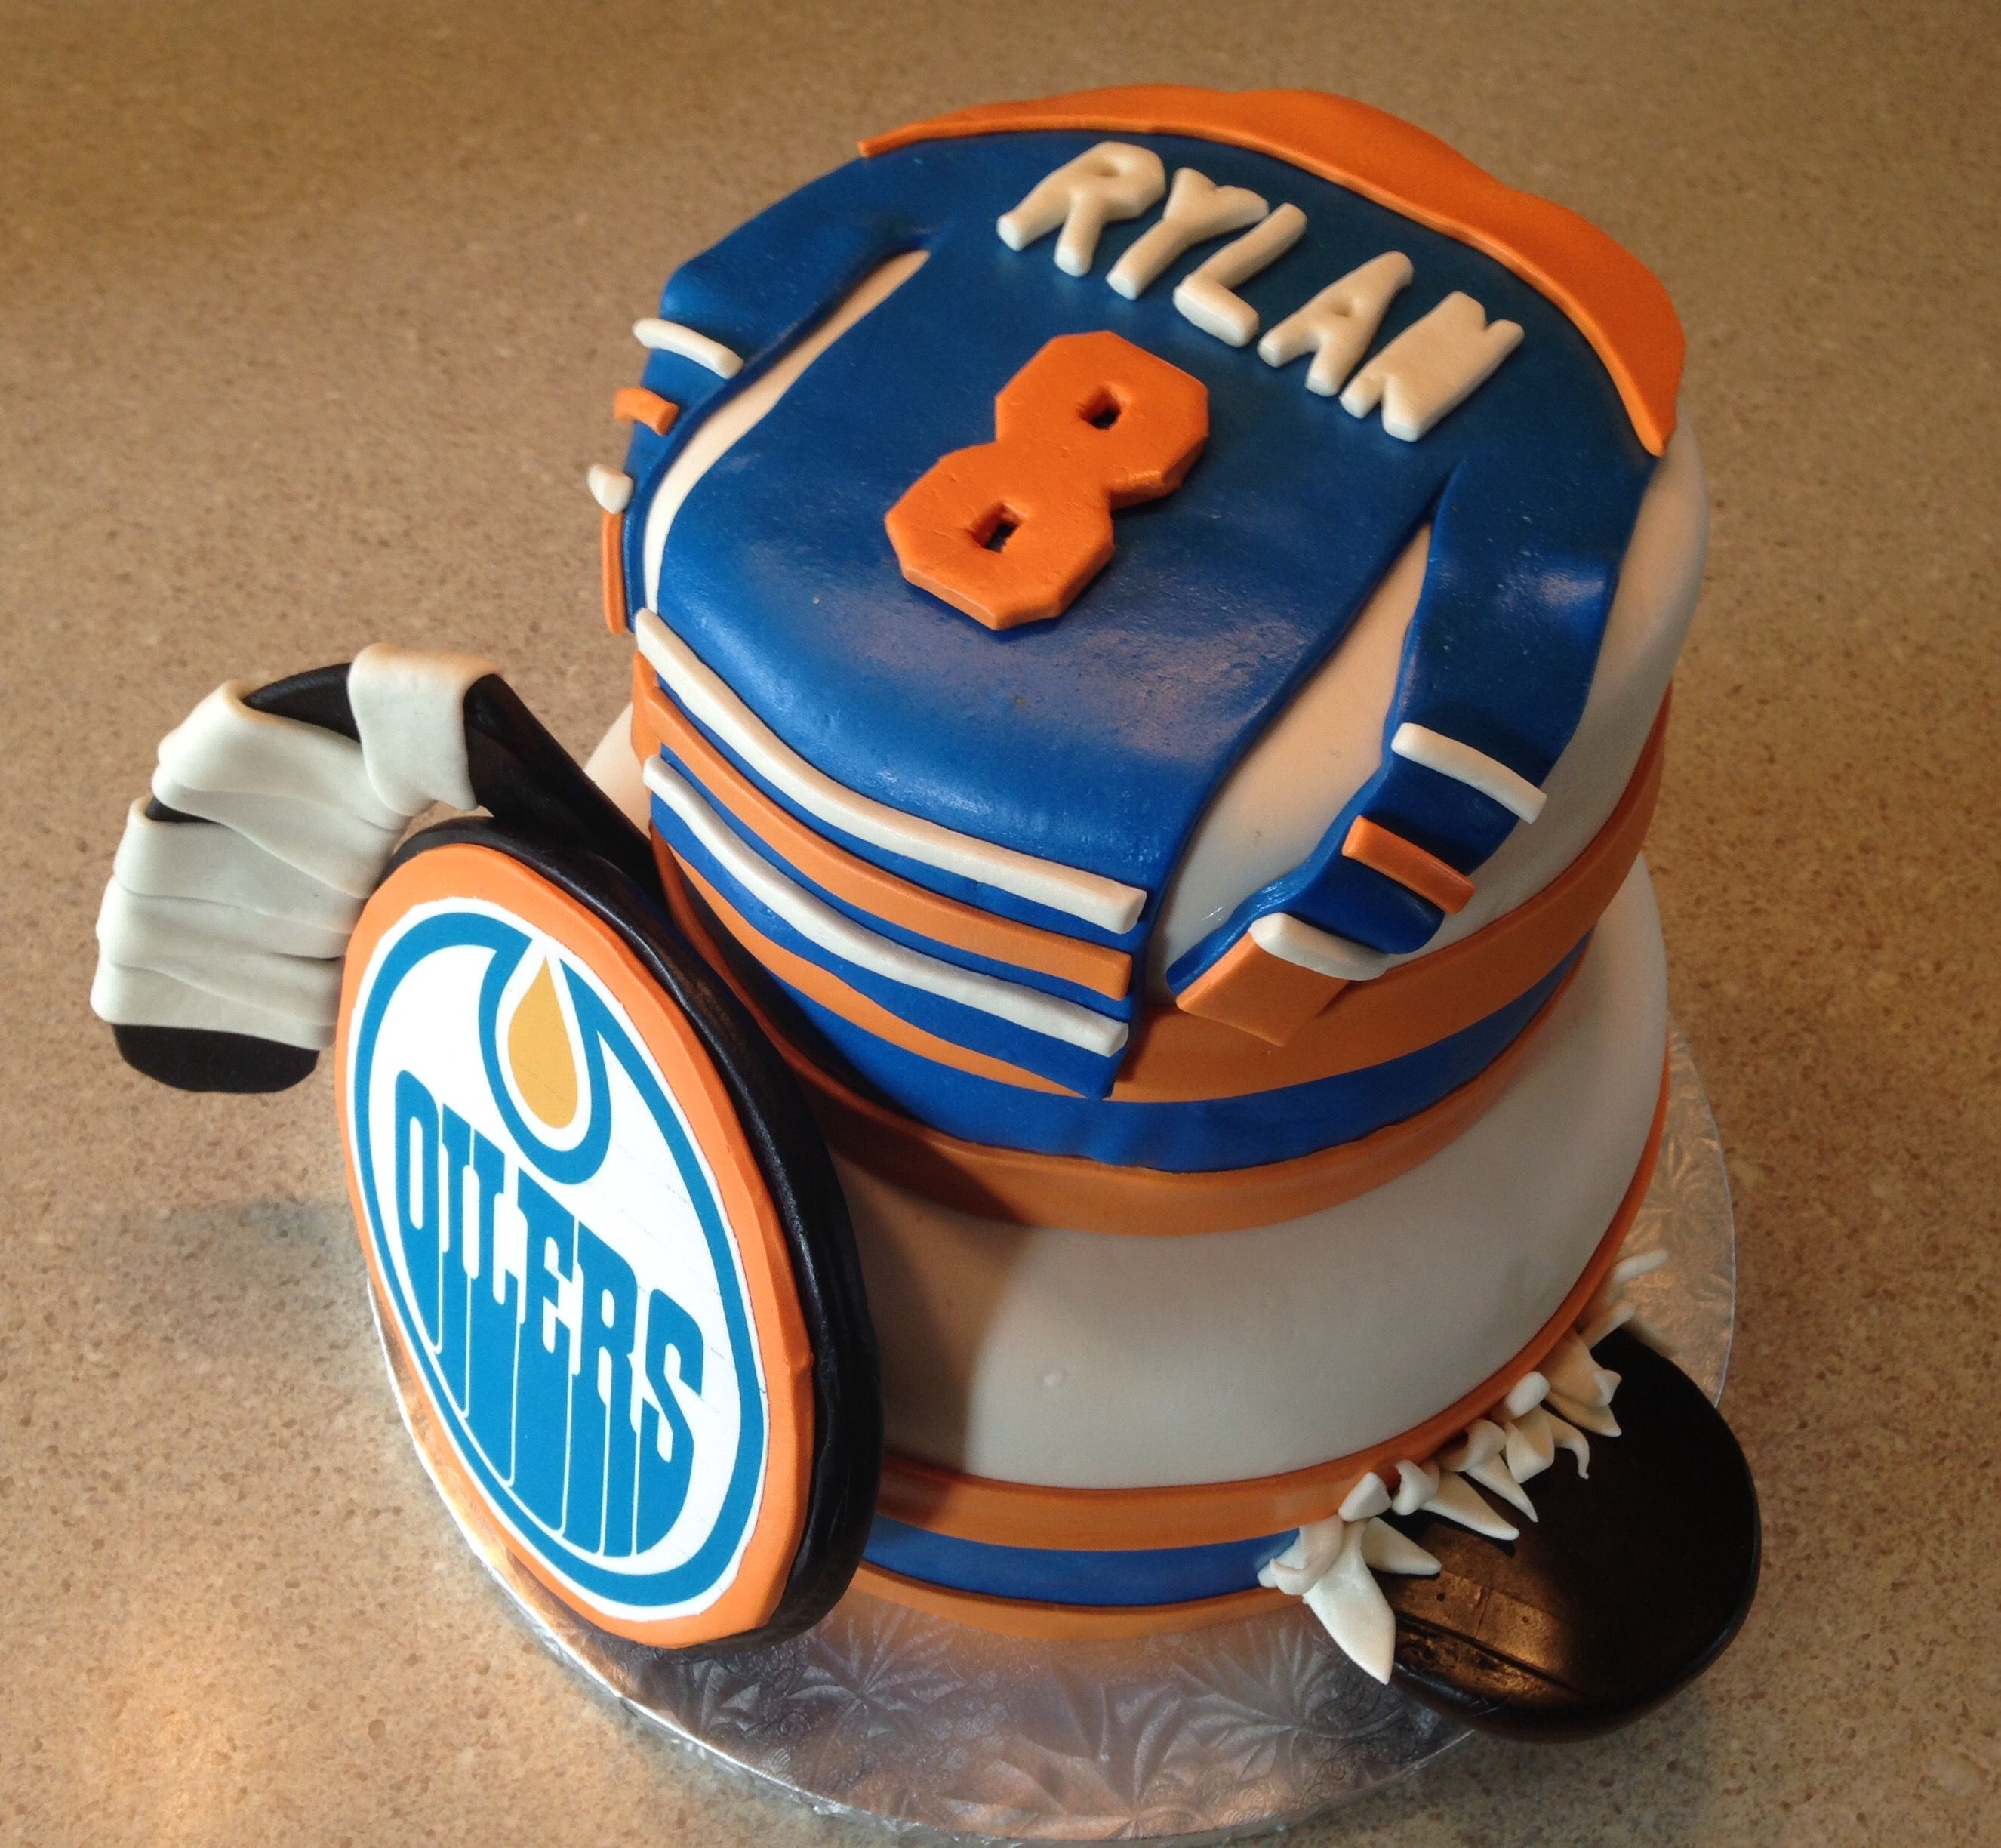 Oilers cake with jersey hockey puck and stick maxs bday